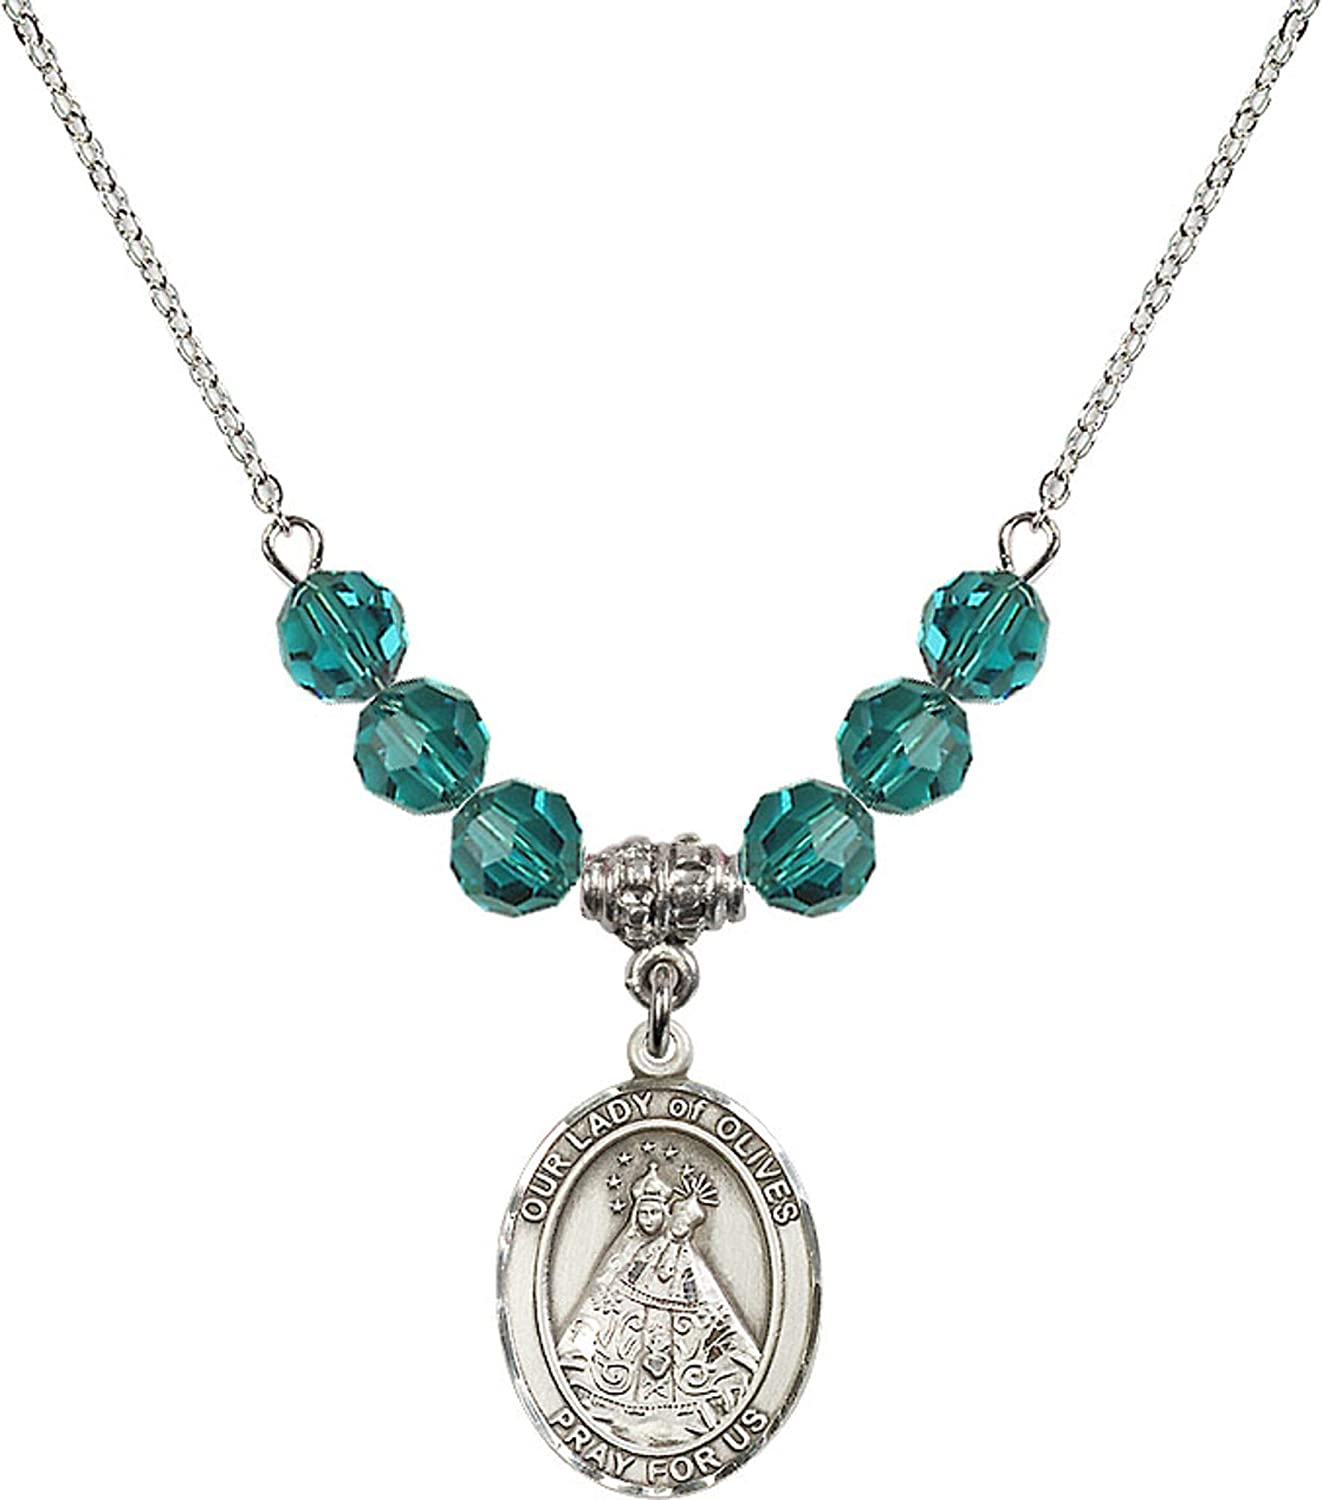 Bonyak Jewelry 18 Inch Rhodium Plated Necklace w// 6mm Blue December Birth Month Stone Beads and Our Lady of Olives Charm